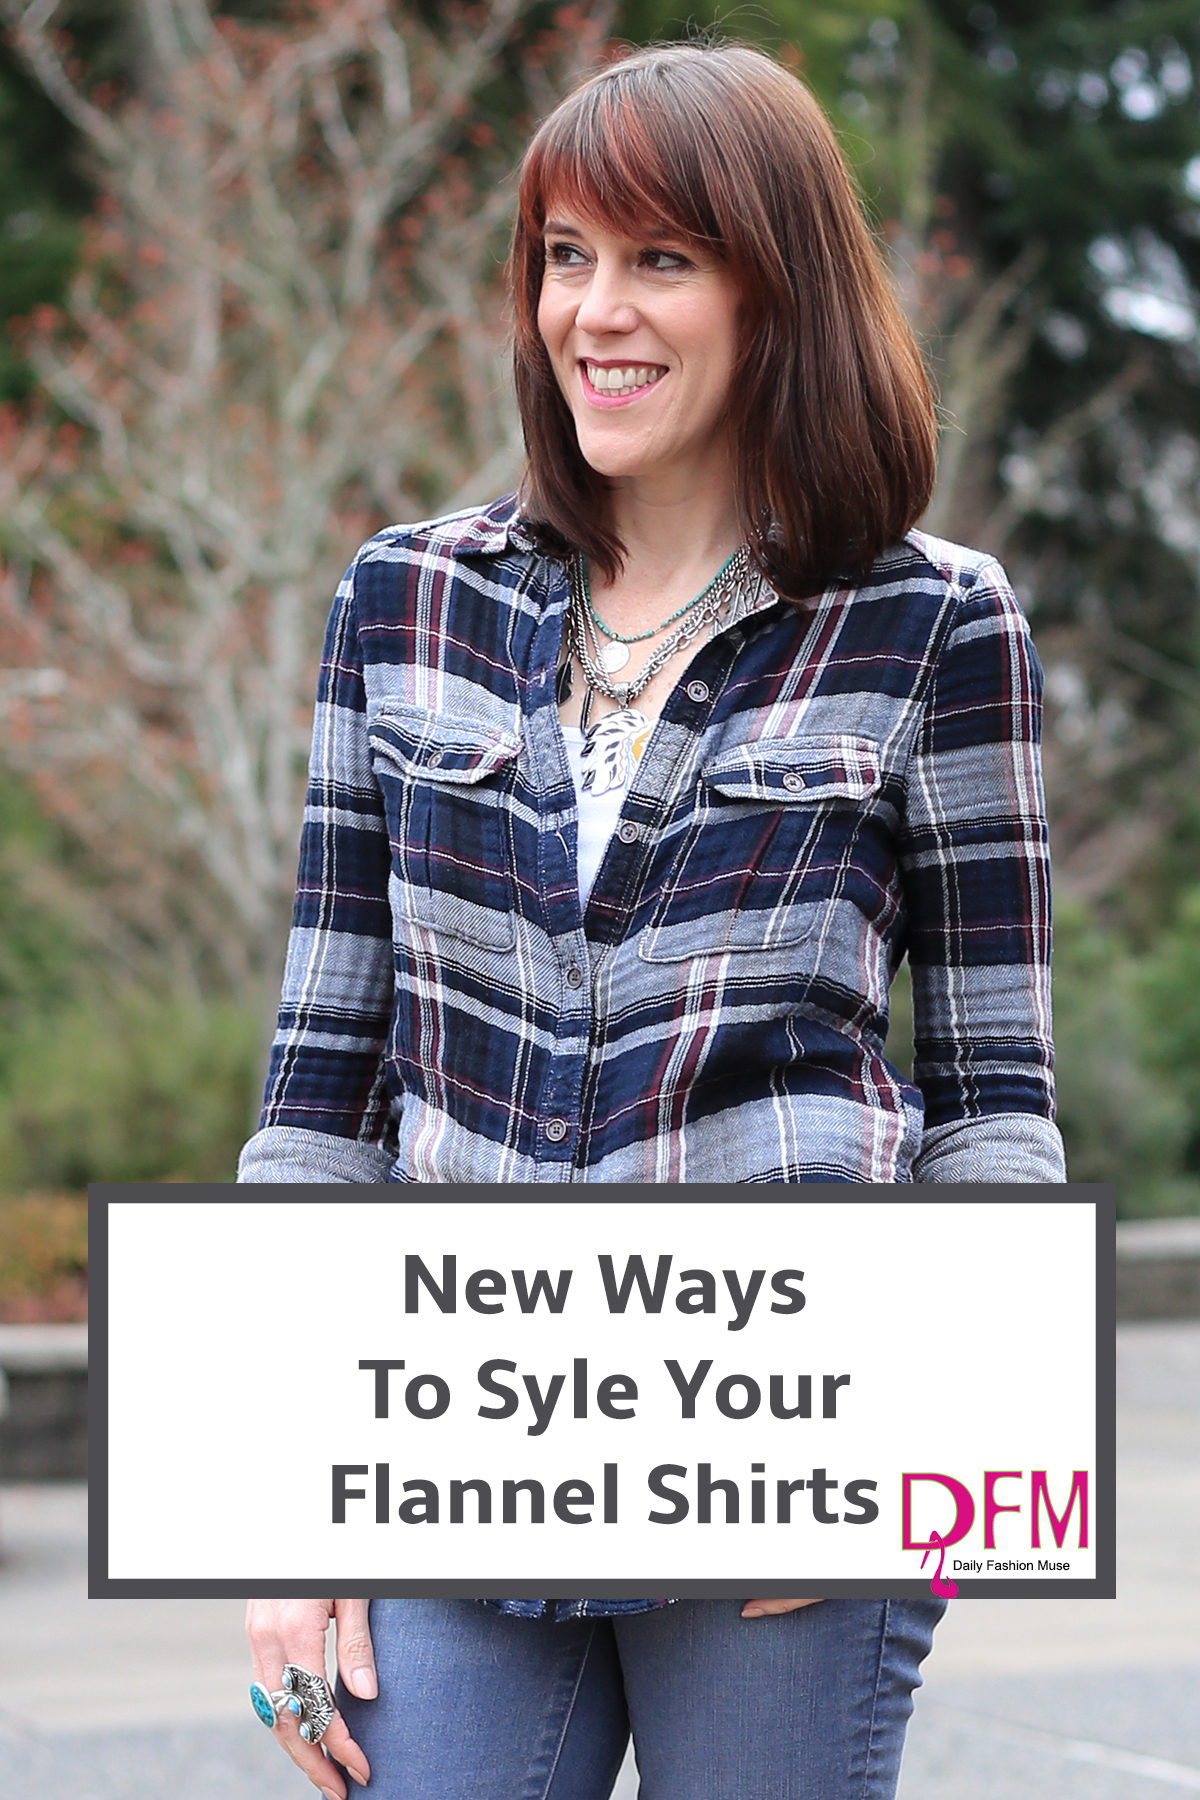 If you find yourself wearing your flannel shirt the same old way time after time, click through to see new ways to style your flannel shirt outfits.